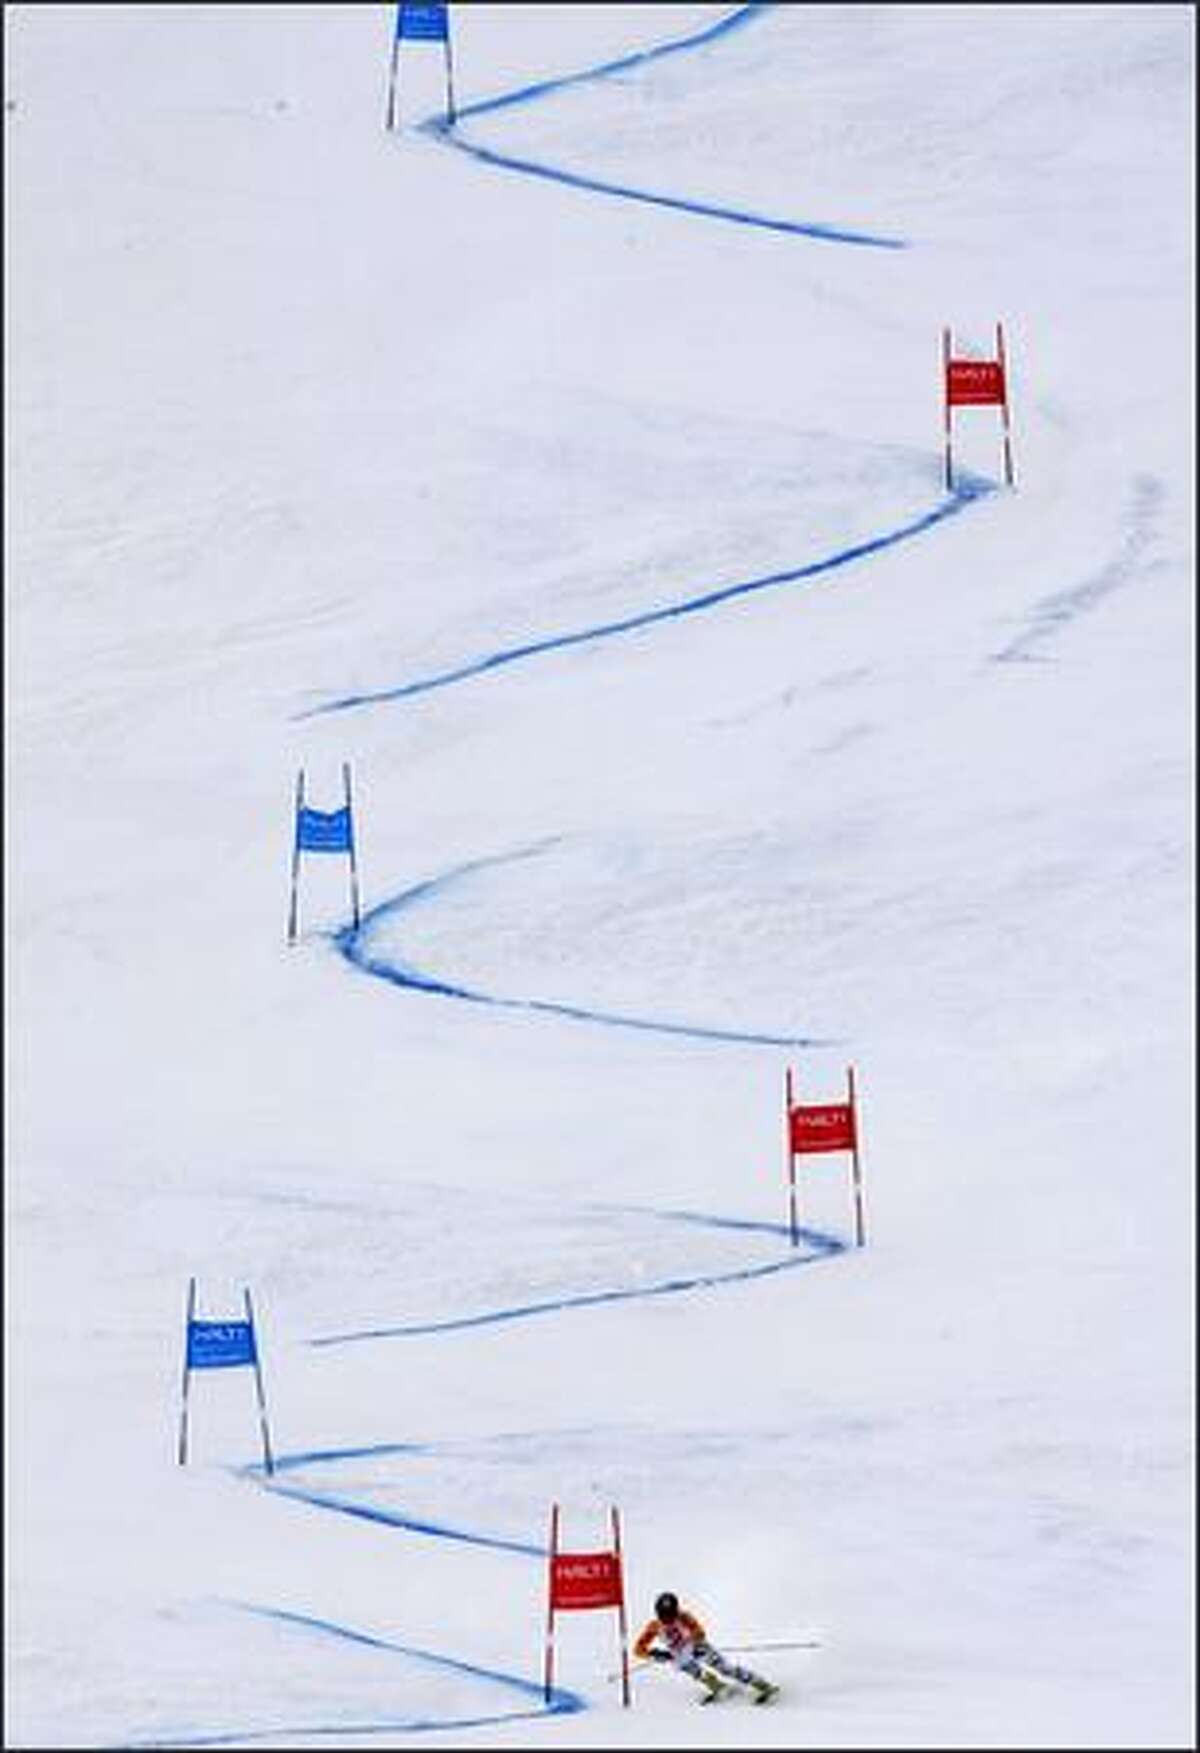 Germany's Kathrin Hoelzl speeds down the course on her way to winning the Women's Giant Slalom race, at the World Alpine Ski Championships in Val d'Isere, France, Thursday, Feb. 12, 2009. (AP Photo/Luca Bruno)